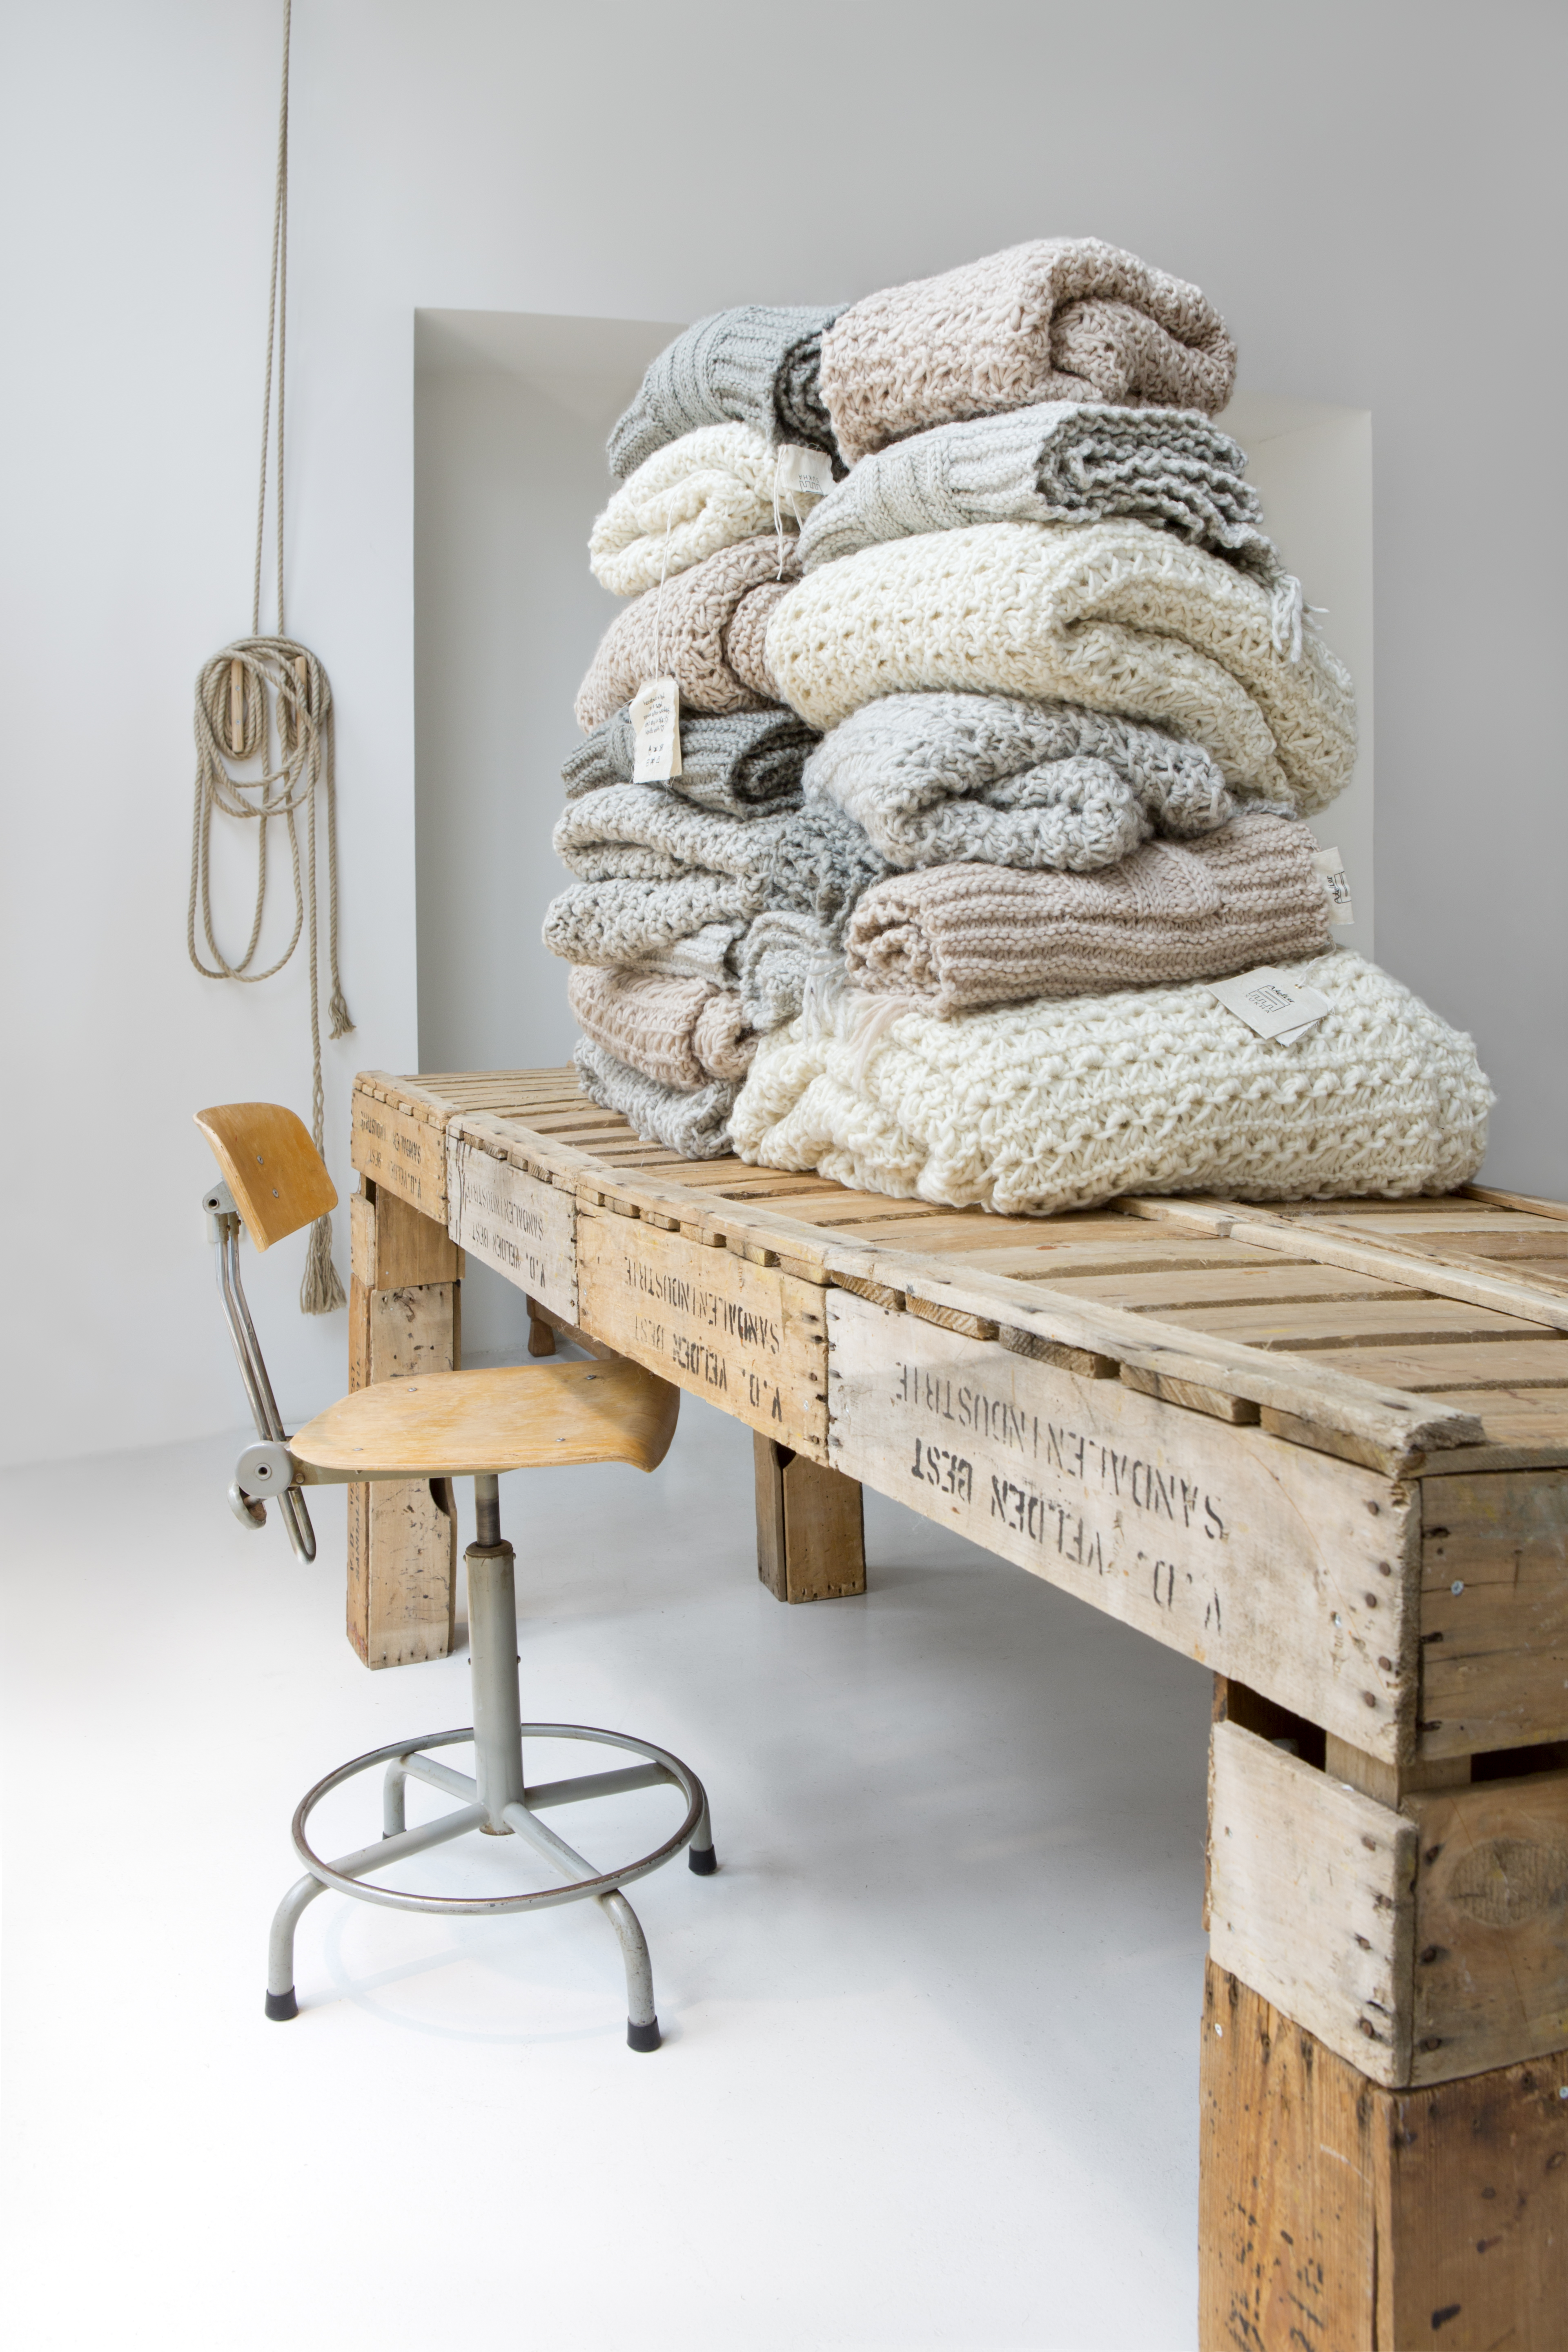 Sukha Amsterdam A Shop With Soul Avenue Lifestyle